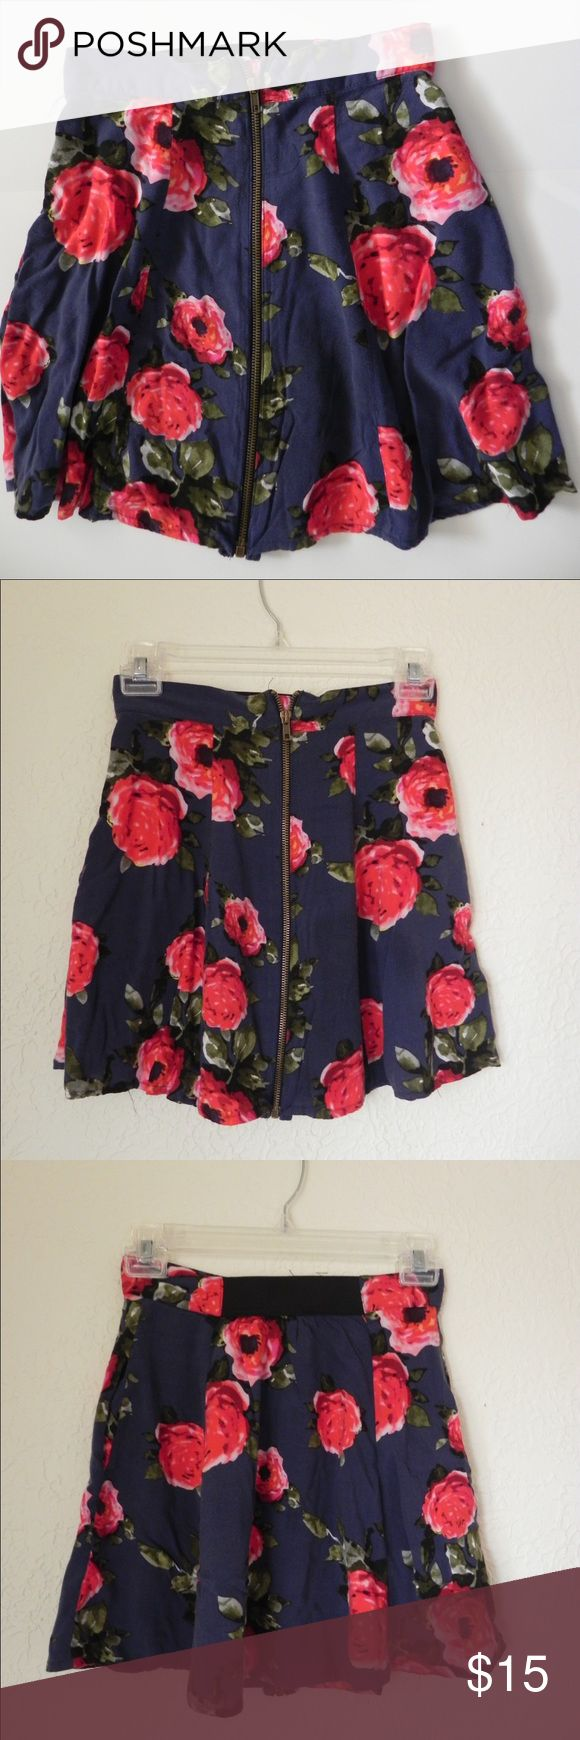 Grey Floral Zip Up Skirt Size S - Pins & Needles from Urban Outfitter - zipper in front and elastic waist band Pins & Needles Skirts Mini